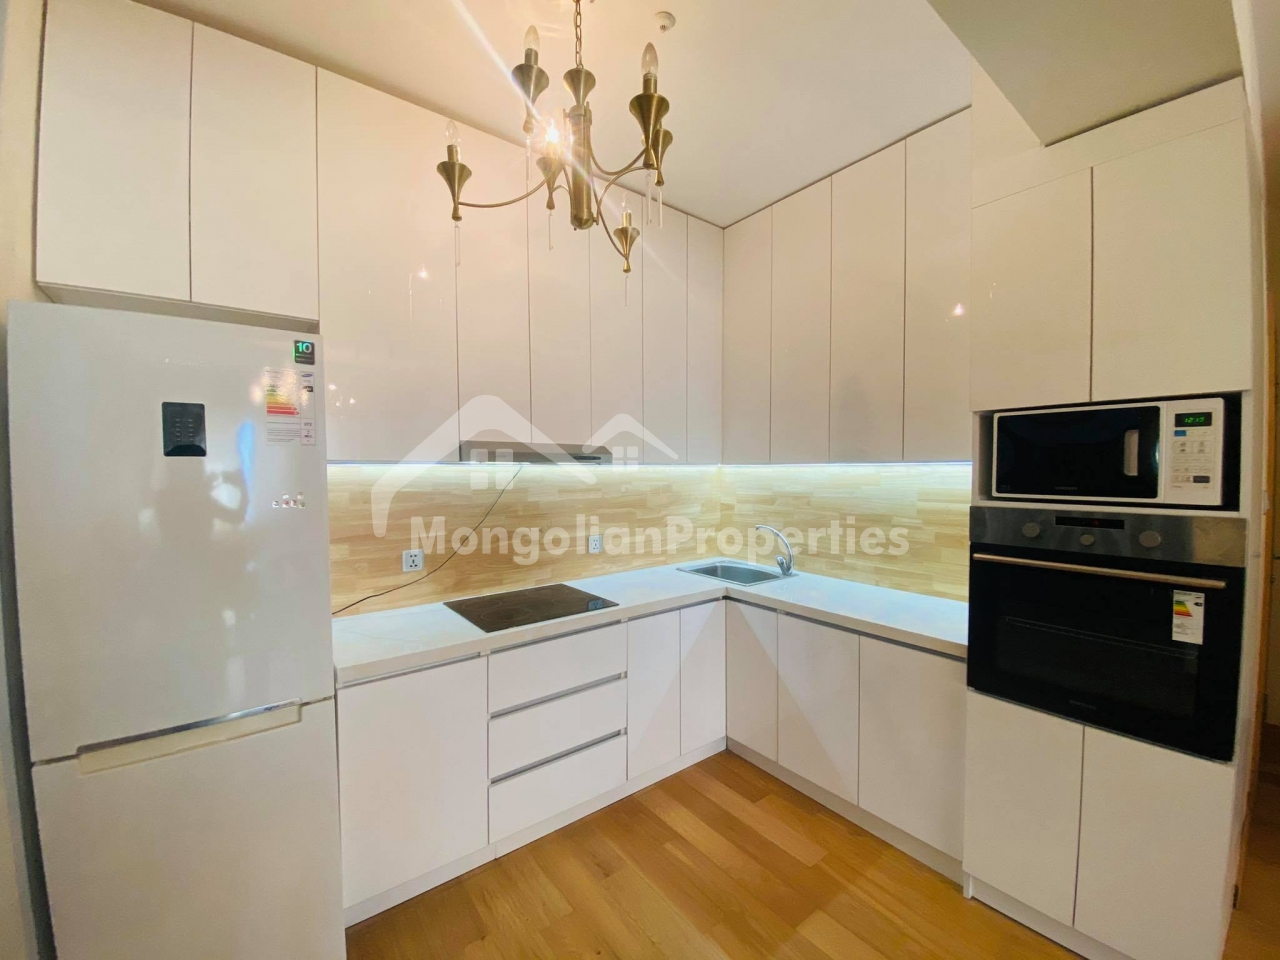 Cozy 1 bedroom apartment is for rent near Shangrila Mall at Monhouse building